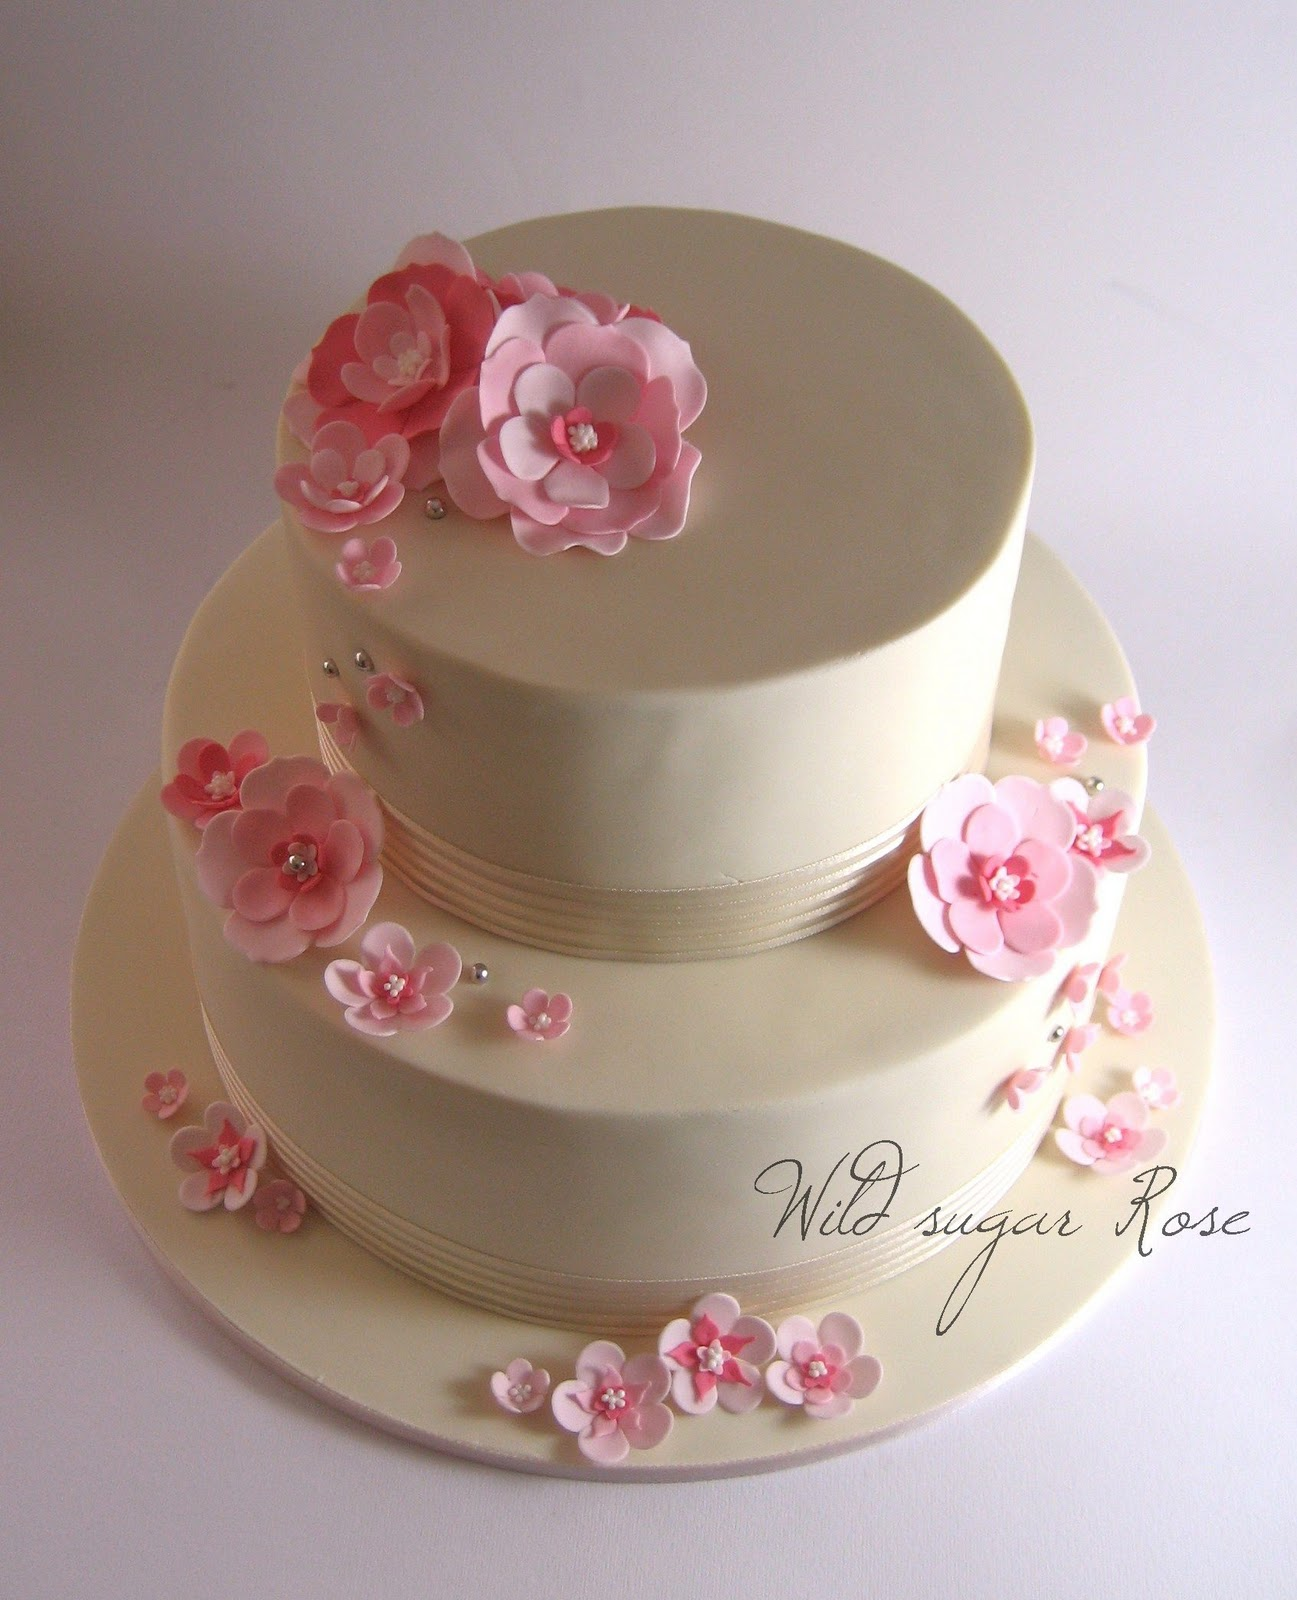 Sugar Rose Cake Design : Wild sugar Rose - wedding cakes, cupcakes and cake ...